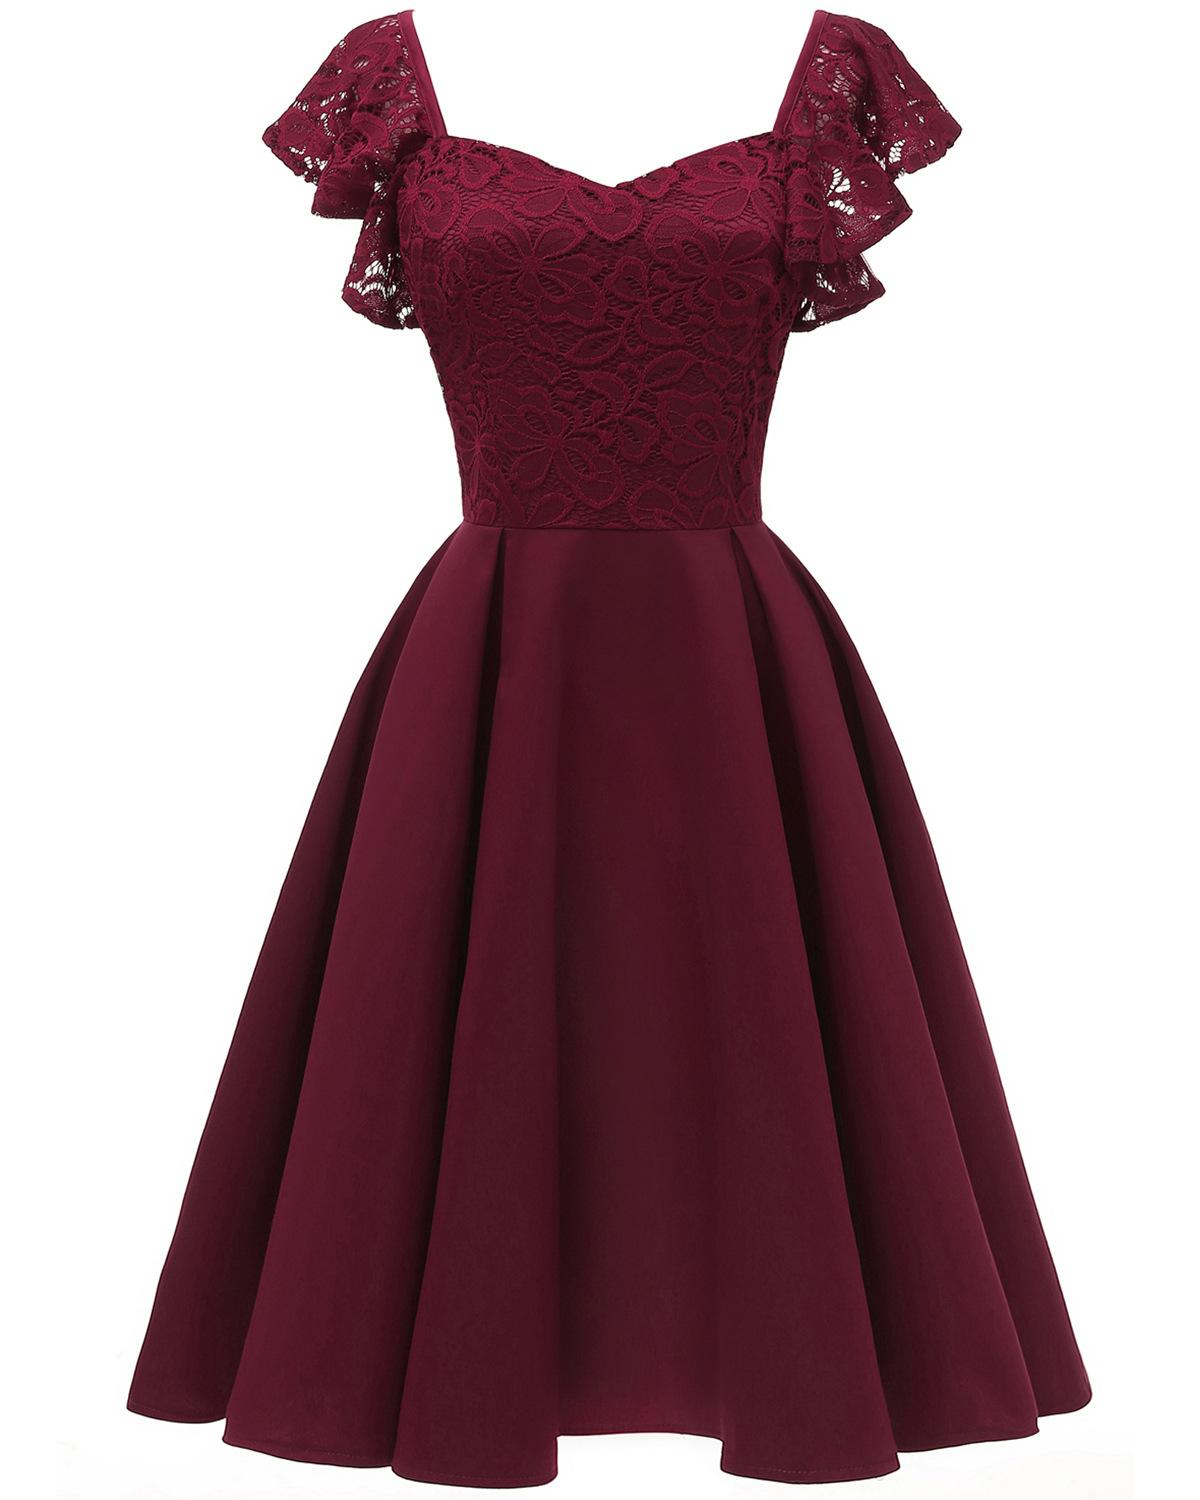 Butterfly Sleeve Burgundy Lace Cocktail Dresses vestidos elegant Short Formal Dress party 2019 Homecoming Dress